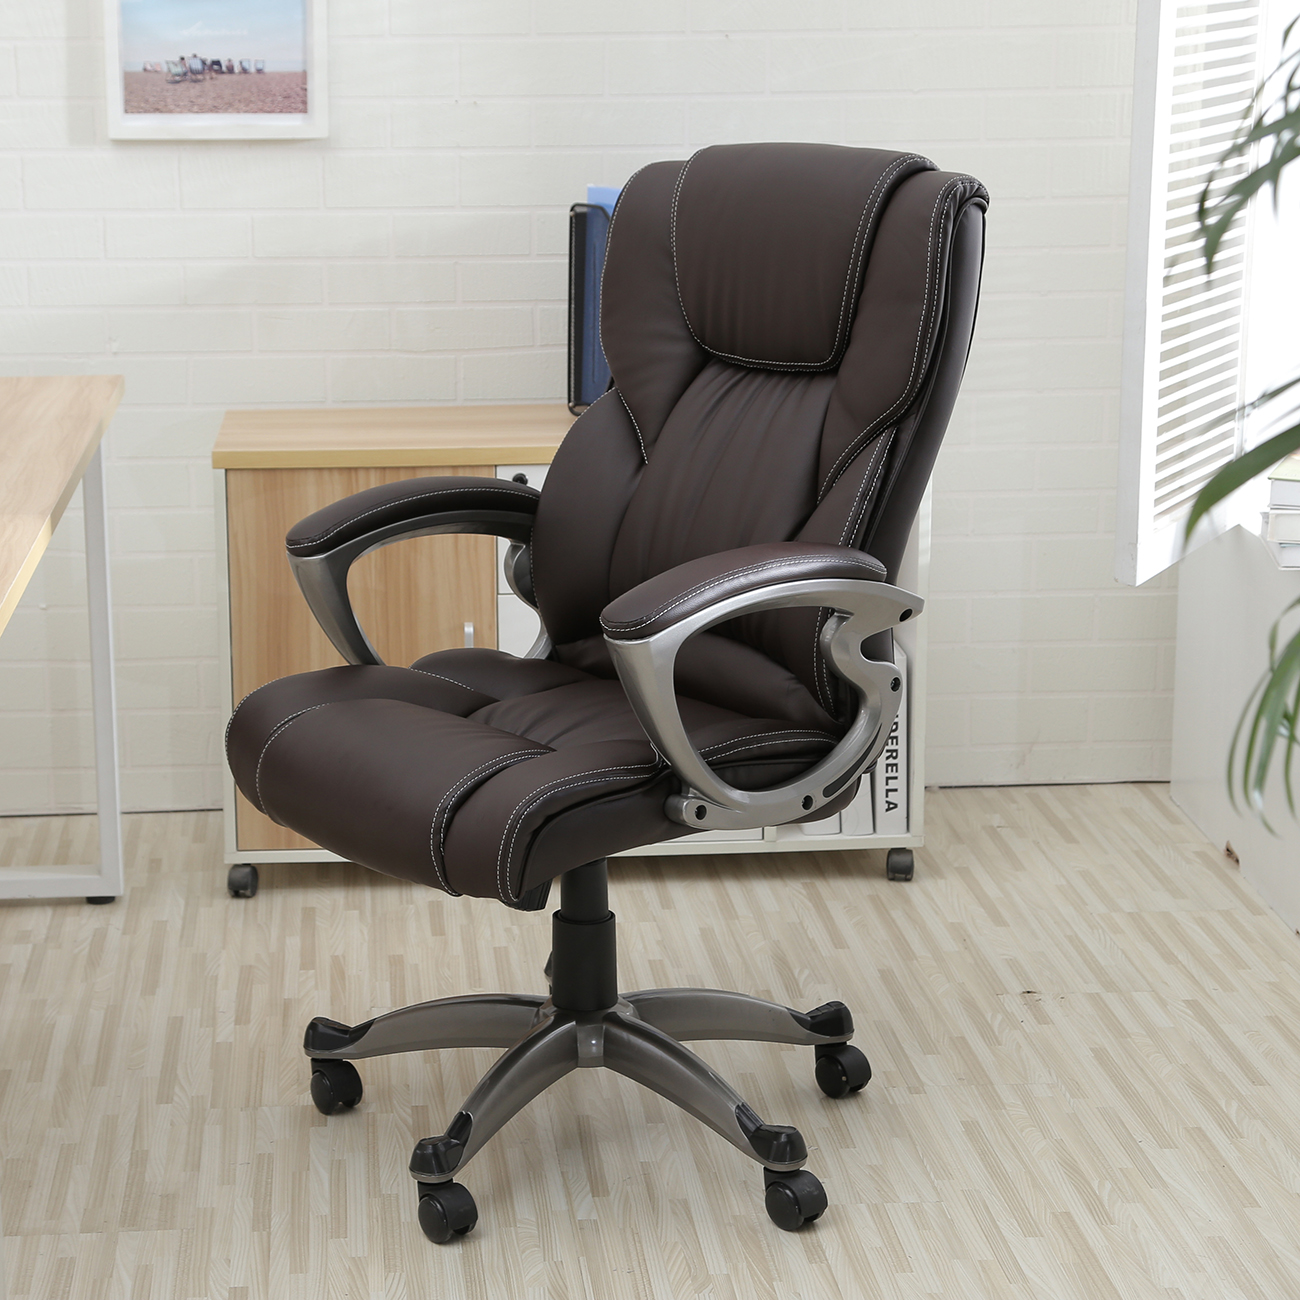 Ergonomic Chair Executive Office Chair High Back Task Ergonomic Computer